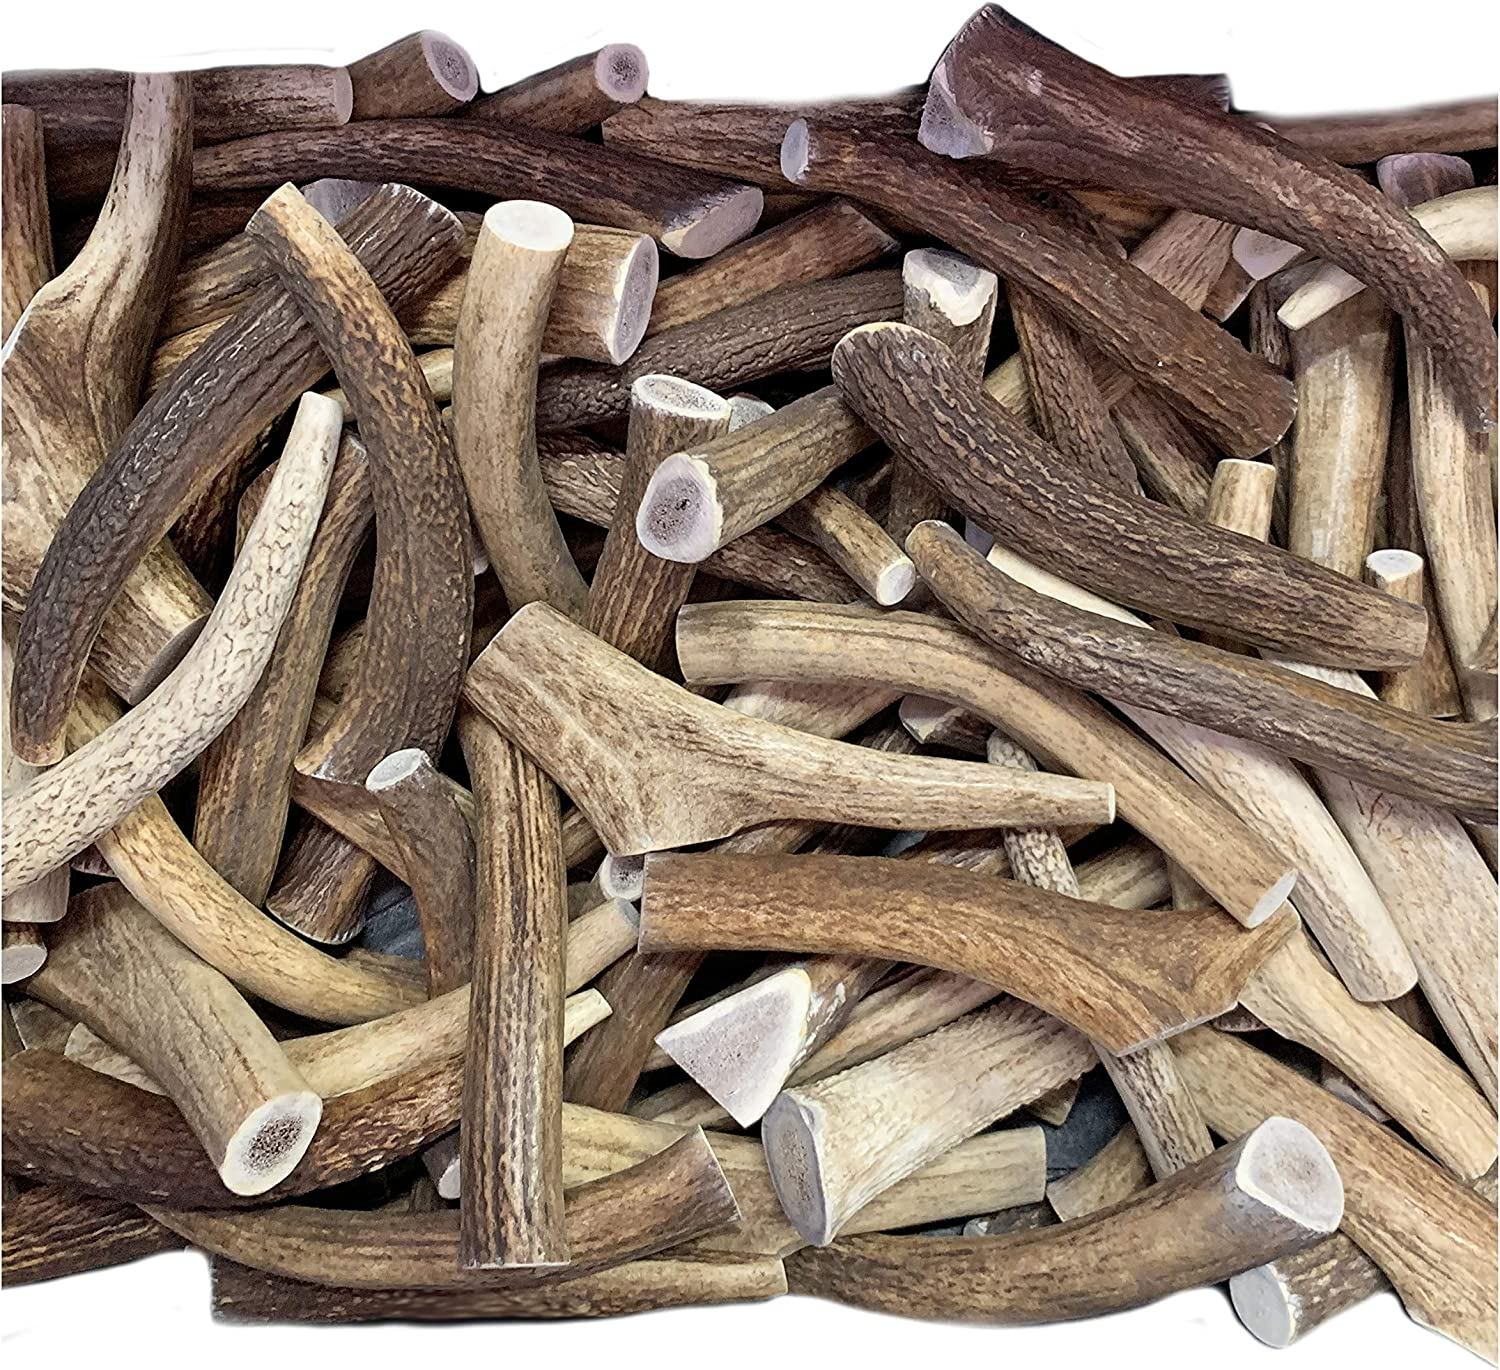 1 Each Naturally Shed Free Shipping! LARGE //THICK Premium Elk Antler Dog Chew